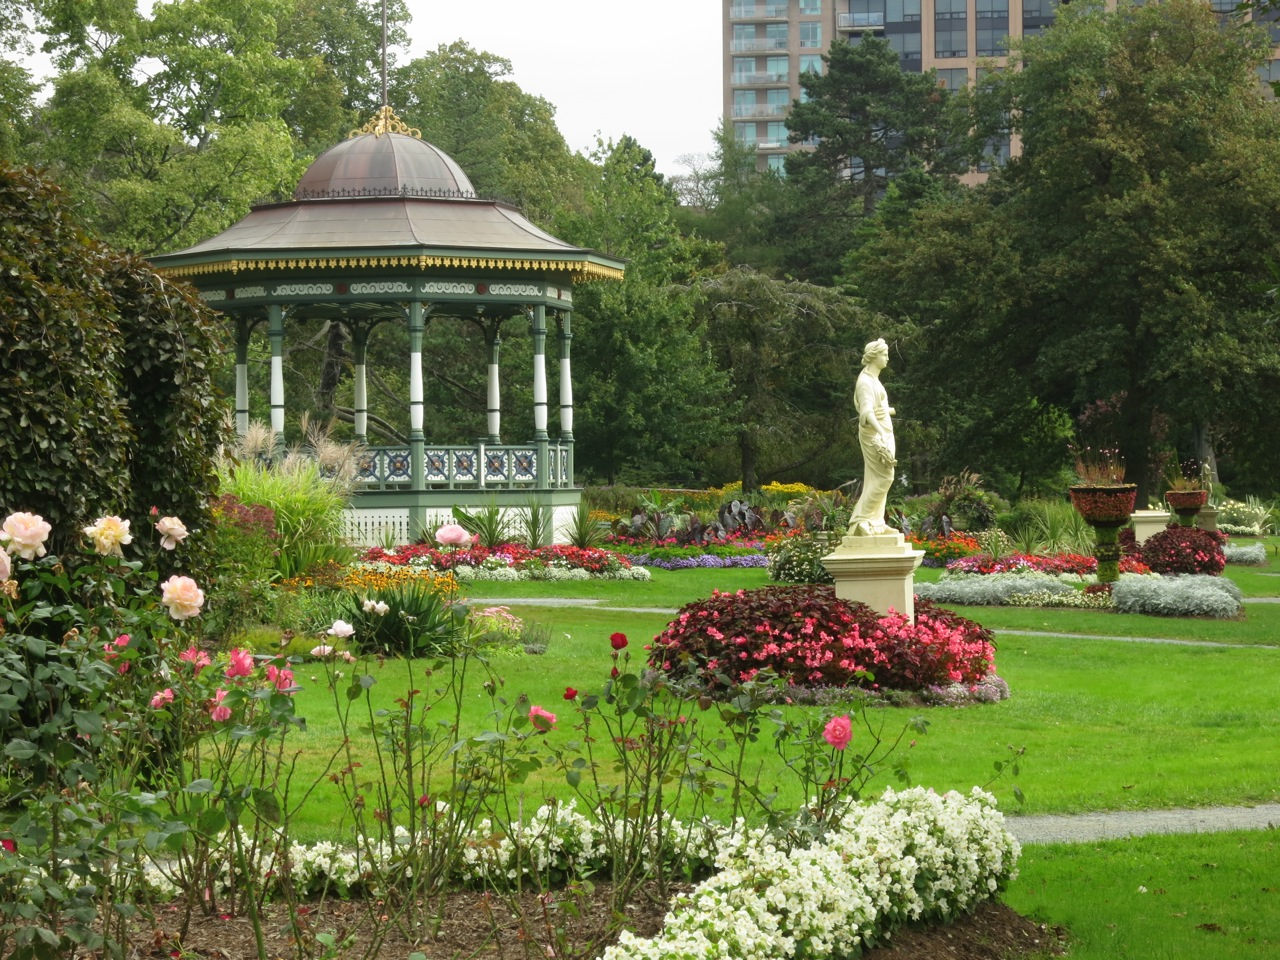 Halifax Public Gardens Along the Gardens path Page 50